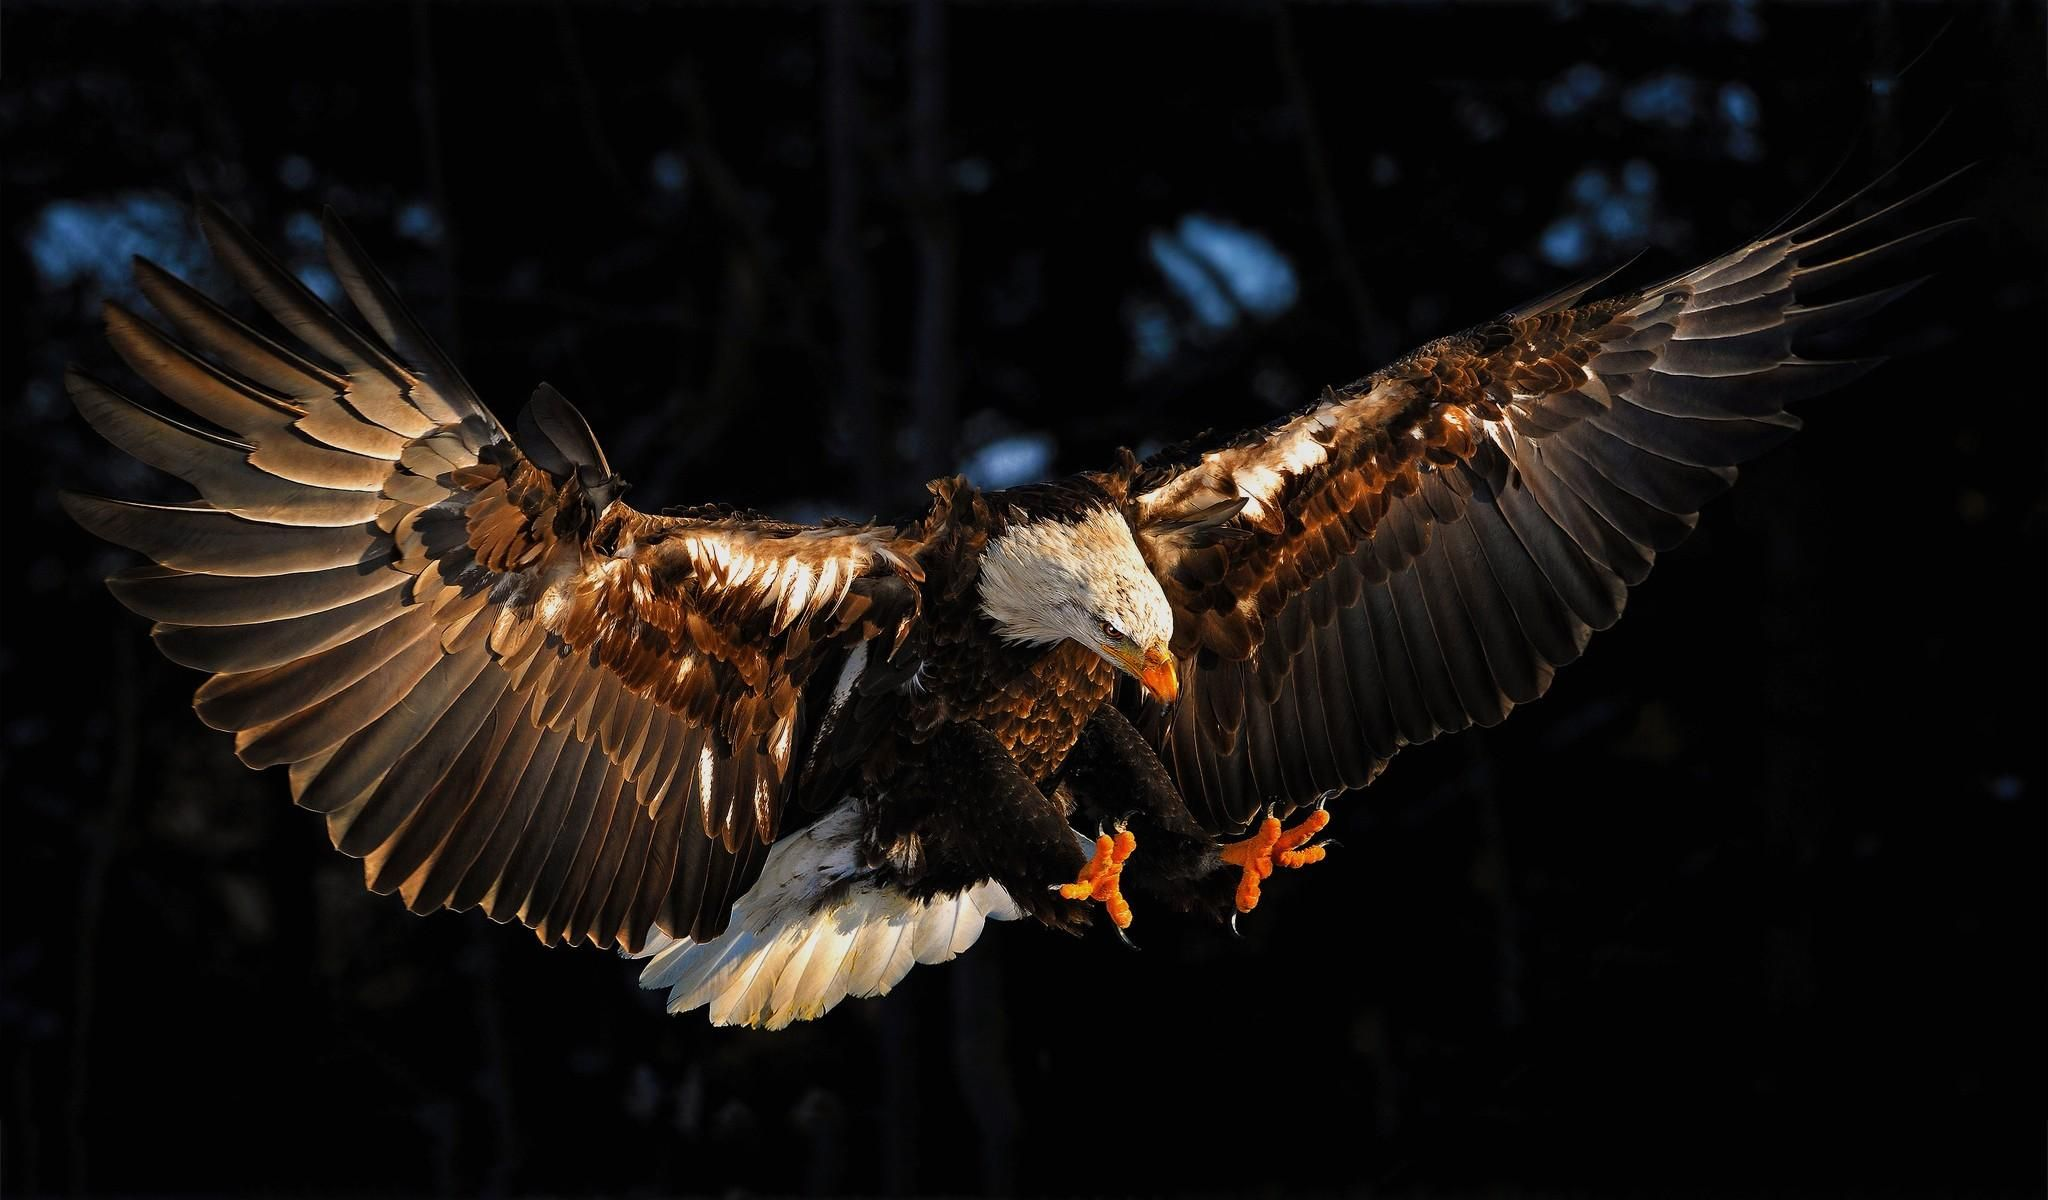 Eagle Wallpapers, Download Eagle HD Wallpapers for Free ...